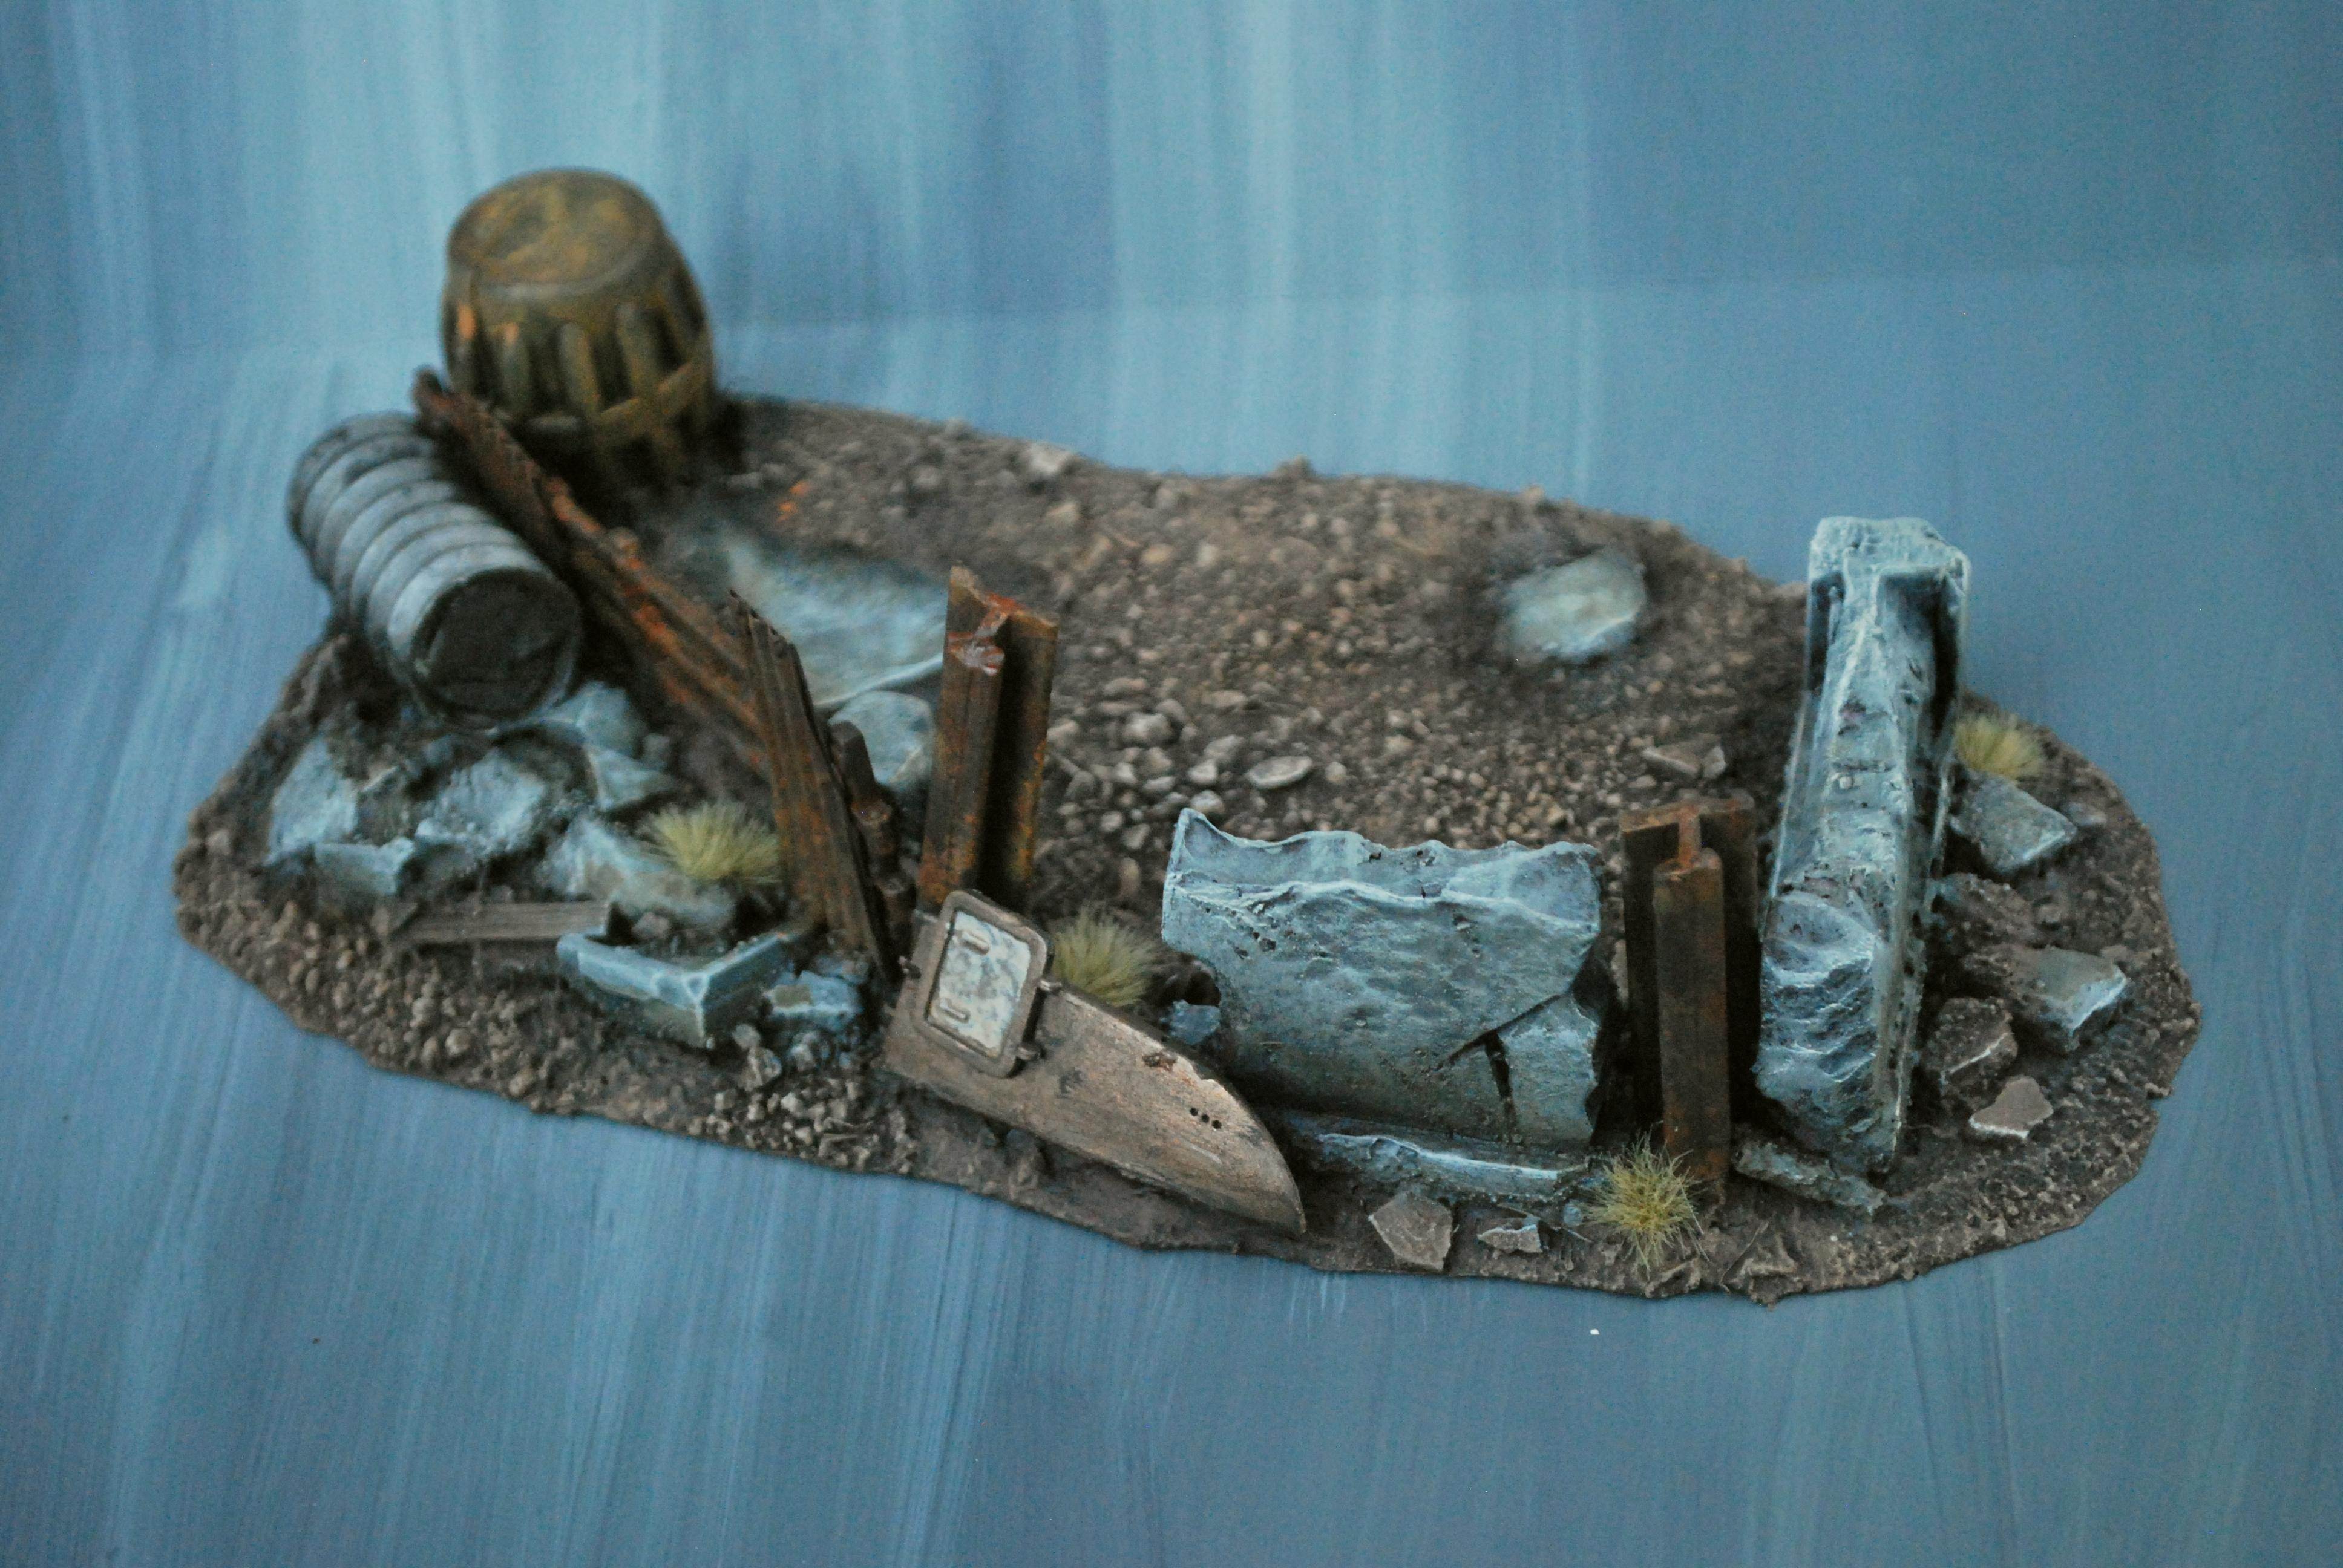 Bits, Commission, Custom, Diorama, Empire, Fallout, Foam, Imperium, Post-apoc, Rubble, Ruins, Scratch Build, Space Marines, Terrain, Terrainwalk3r, Terrainwalker, This Is Not A Test, Tnt, Warhammer 40,000